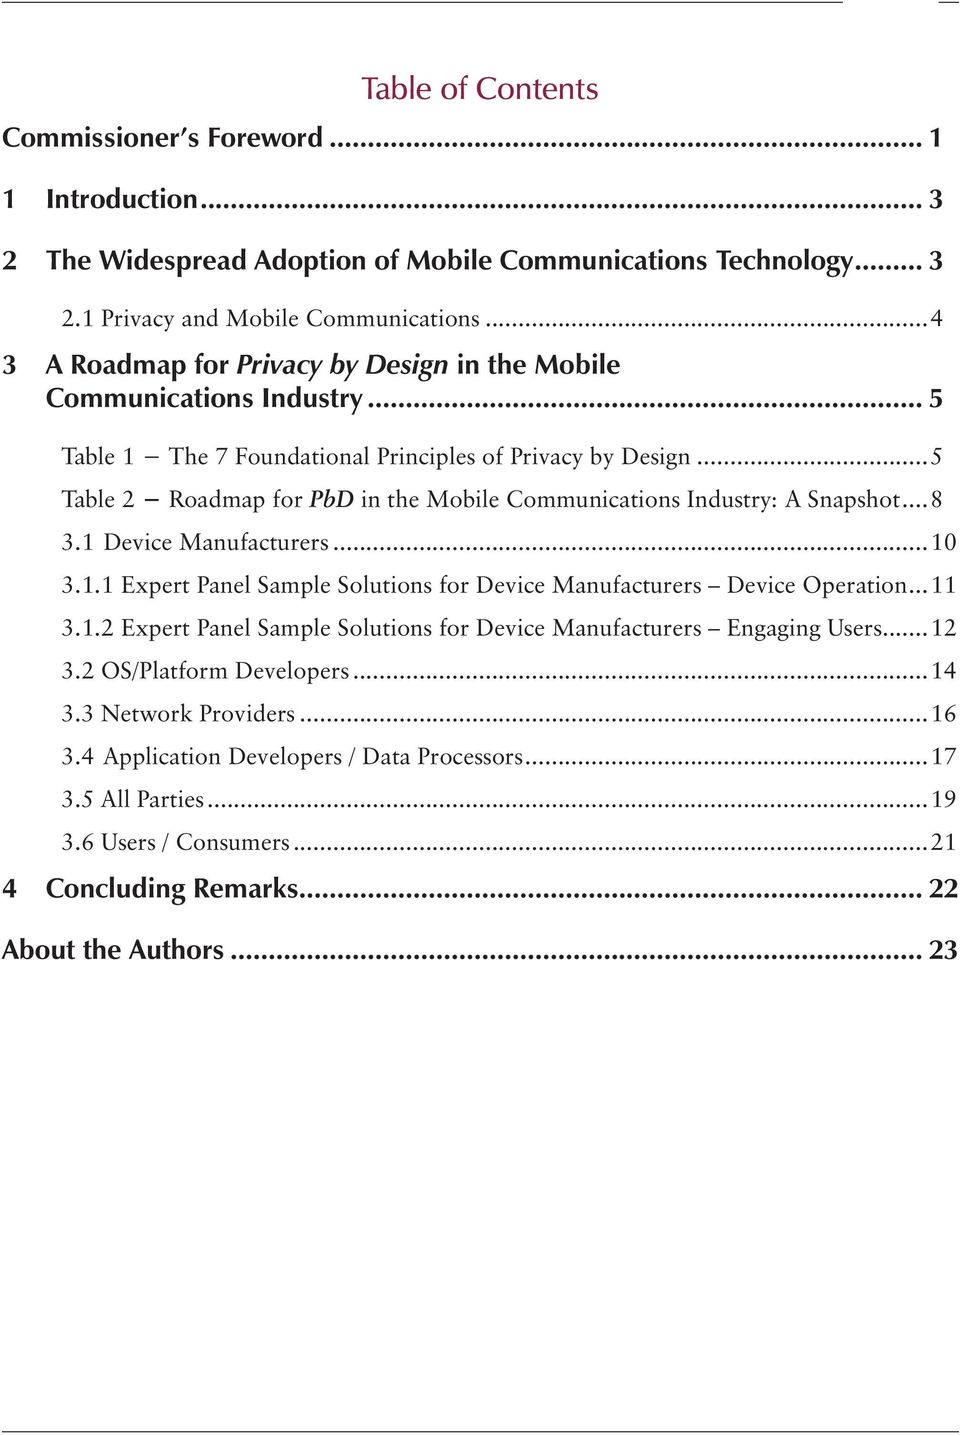 ..5 Table 2 Roadmap for PbD in the Mobile Communications Industry: A Snapshot...8 3.1 Device Manufacturers...10 3.1.1 Expert Panel Sample Solutions for Device Manufacturers Device Operation...11 3.1.2 Expert Panel Sample Solutions for Device Manufacturers Engaging Users.